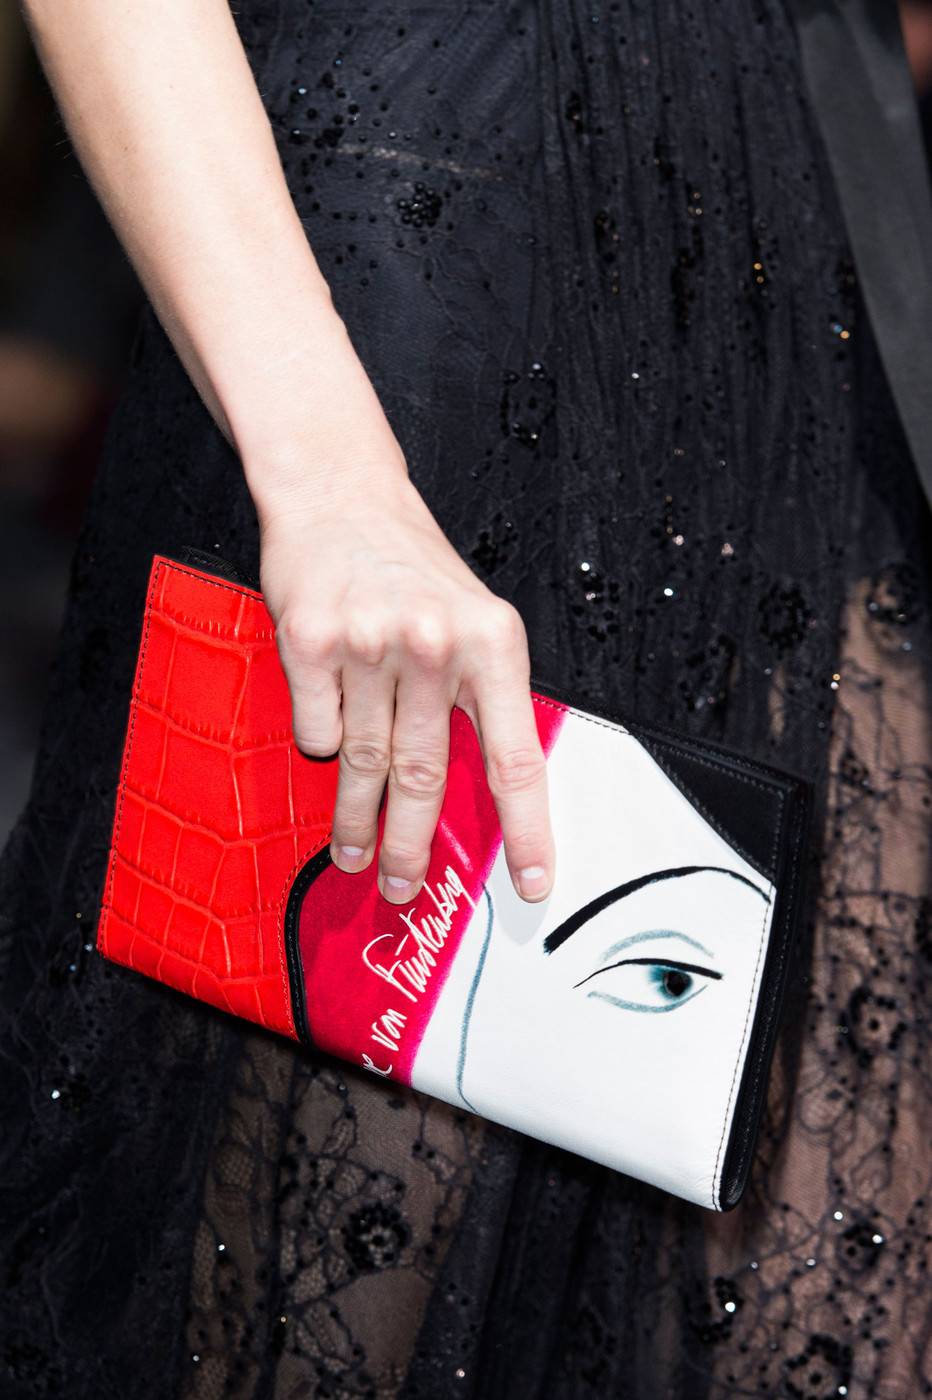 Fall 2015 accessories trend report / best bags / investment bags / crocodile accessories trend at Diane von Furstenberg Fall/Winter 2015 via fashionedbylove.co.uk, british fashion blog